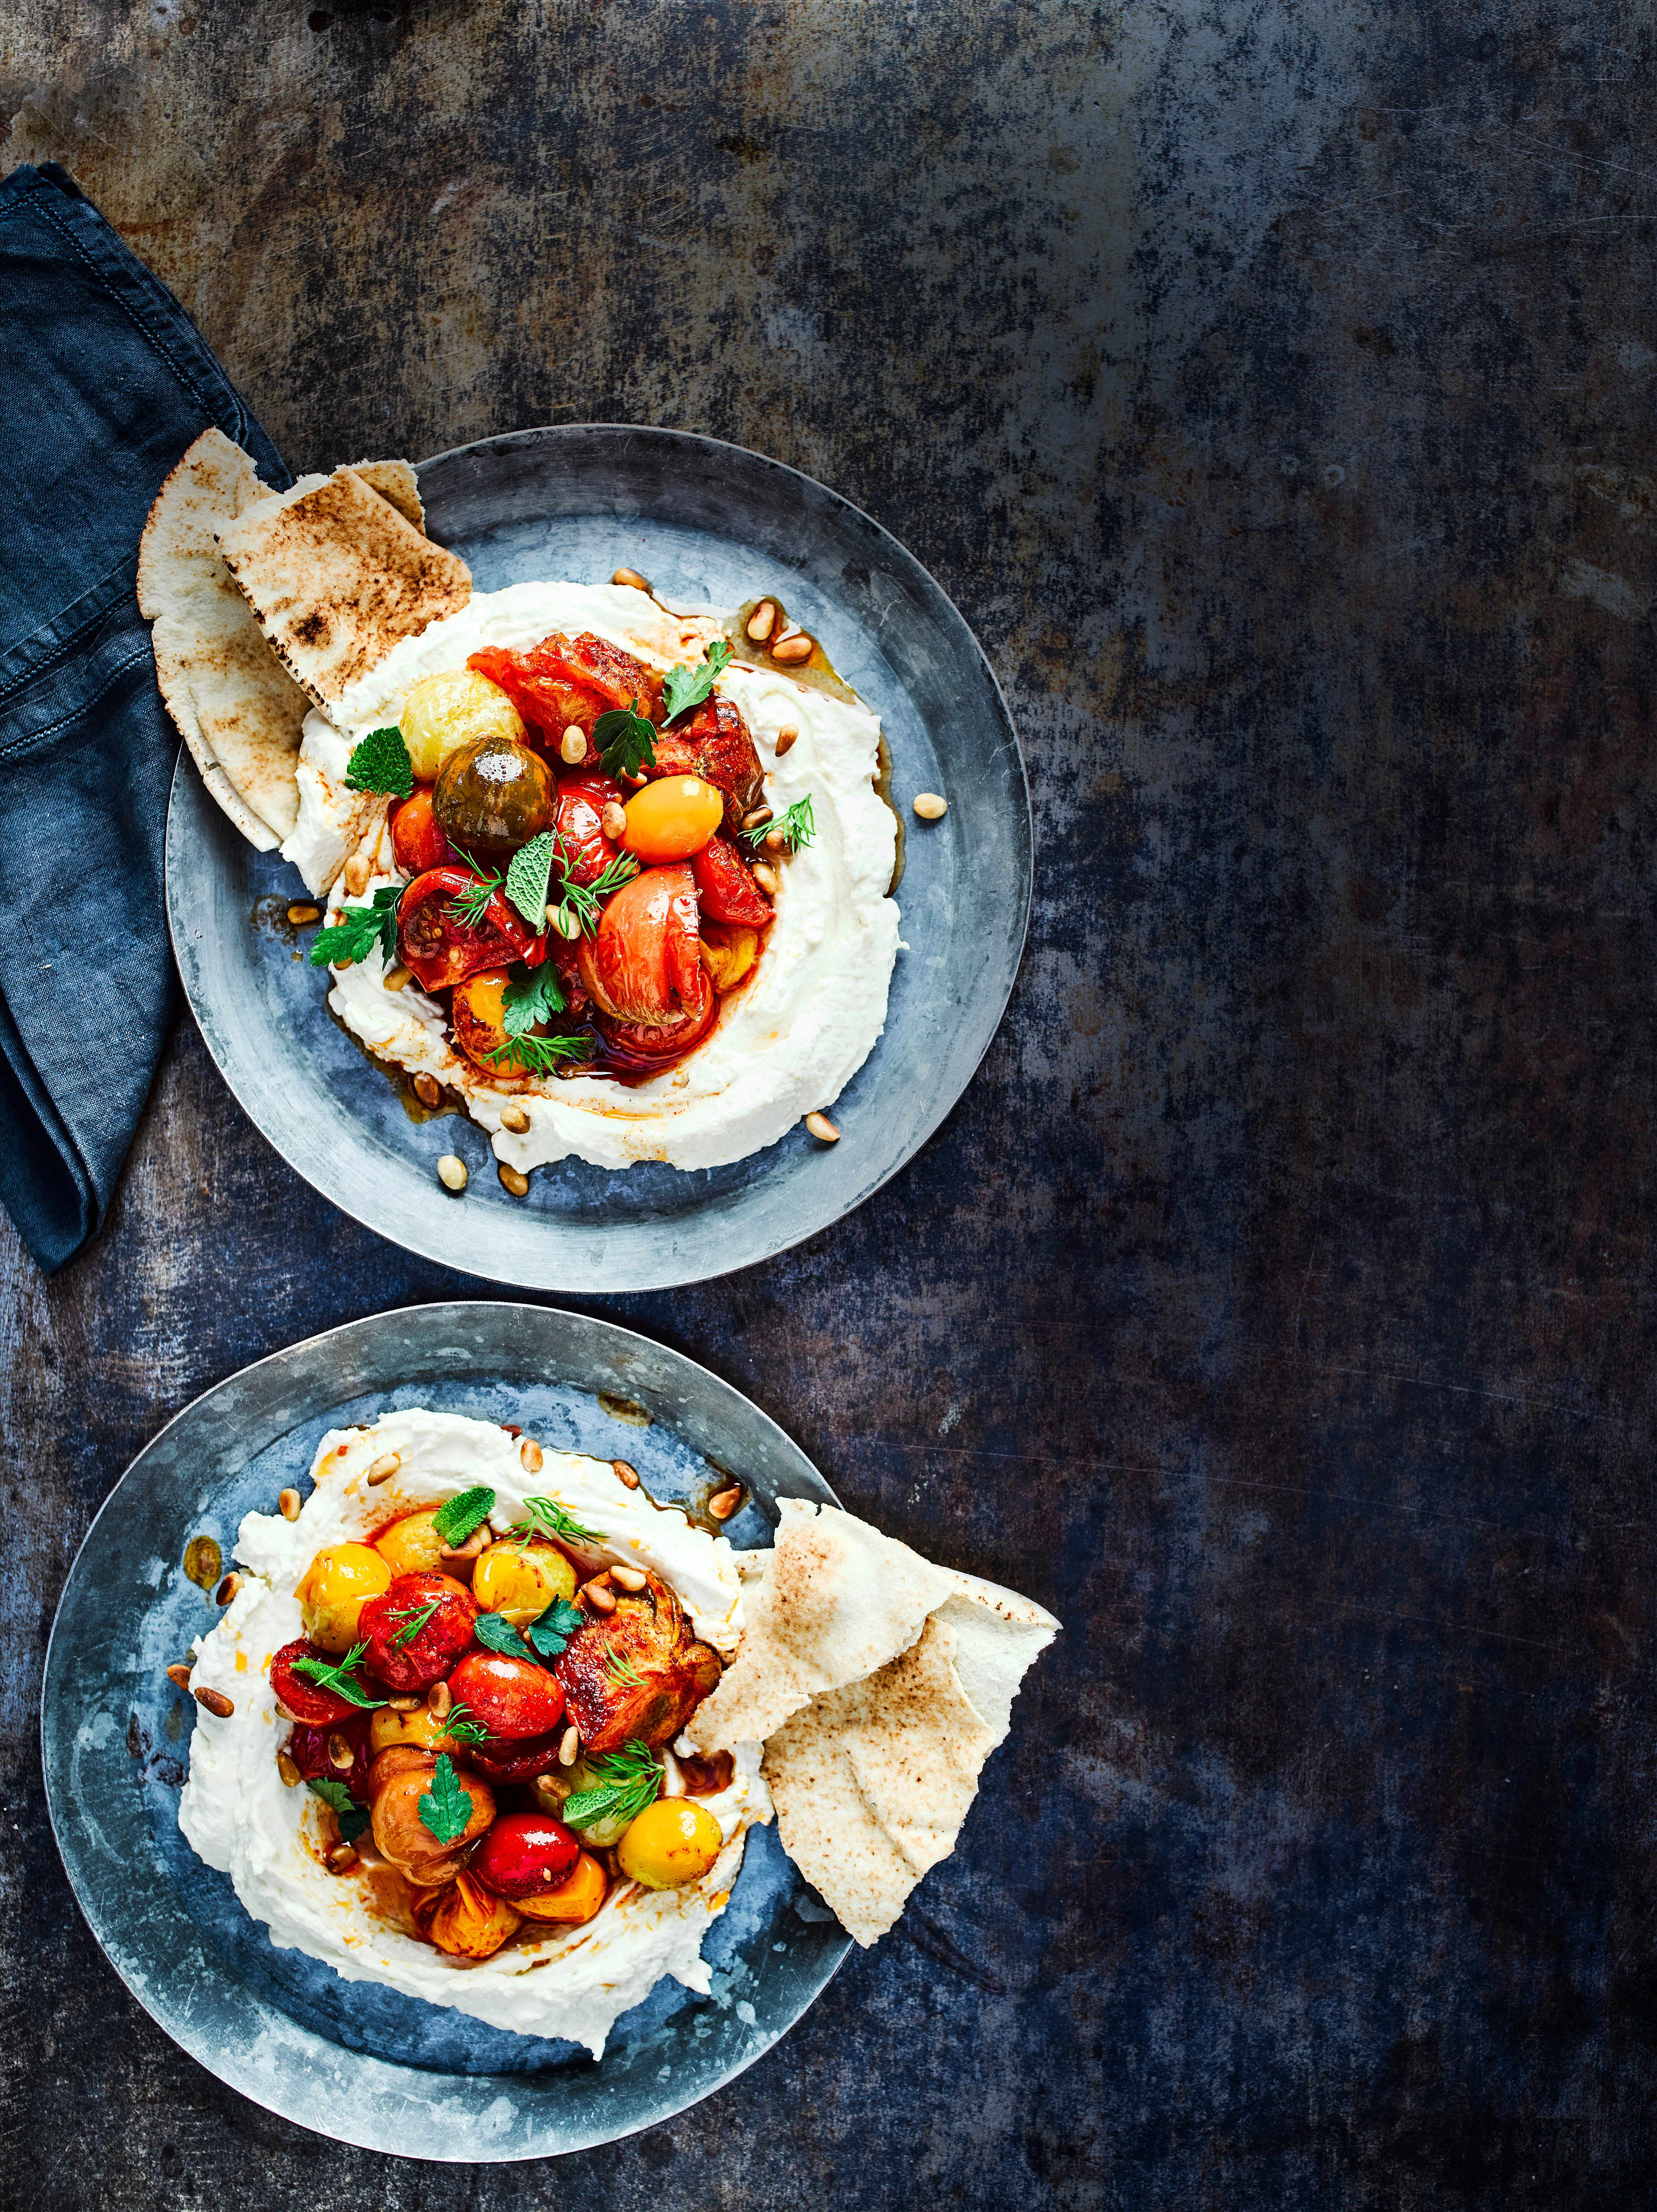 Labneh Recipe with Hummus